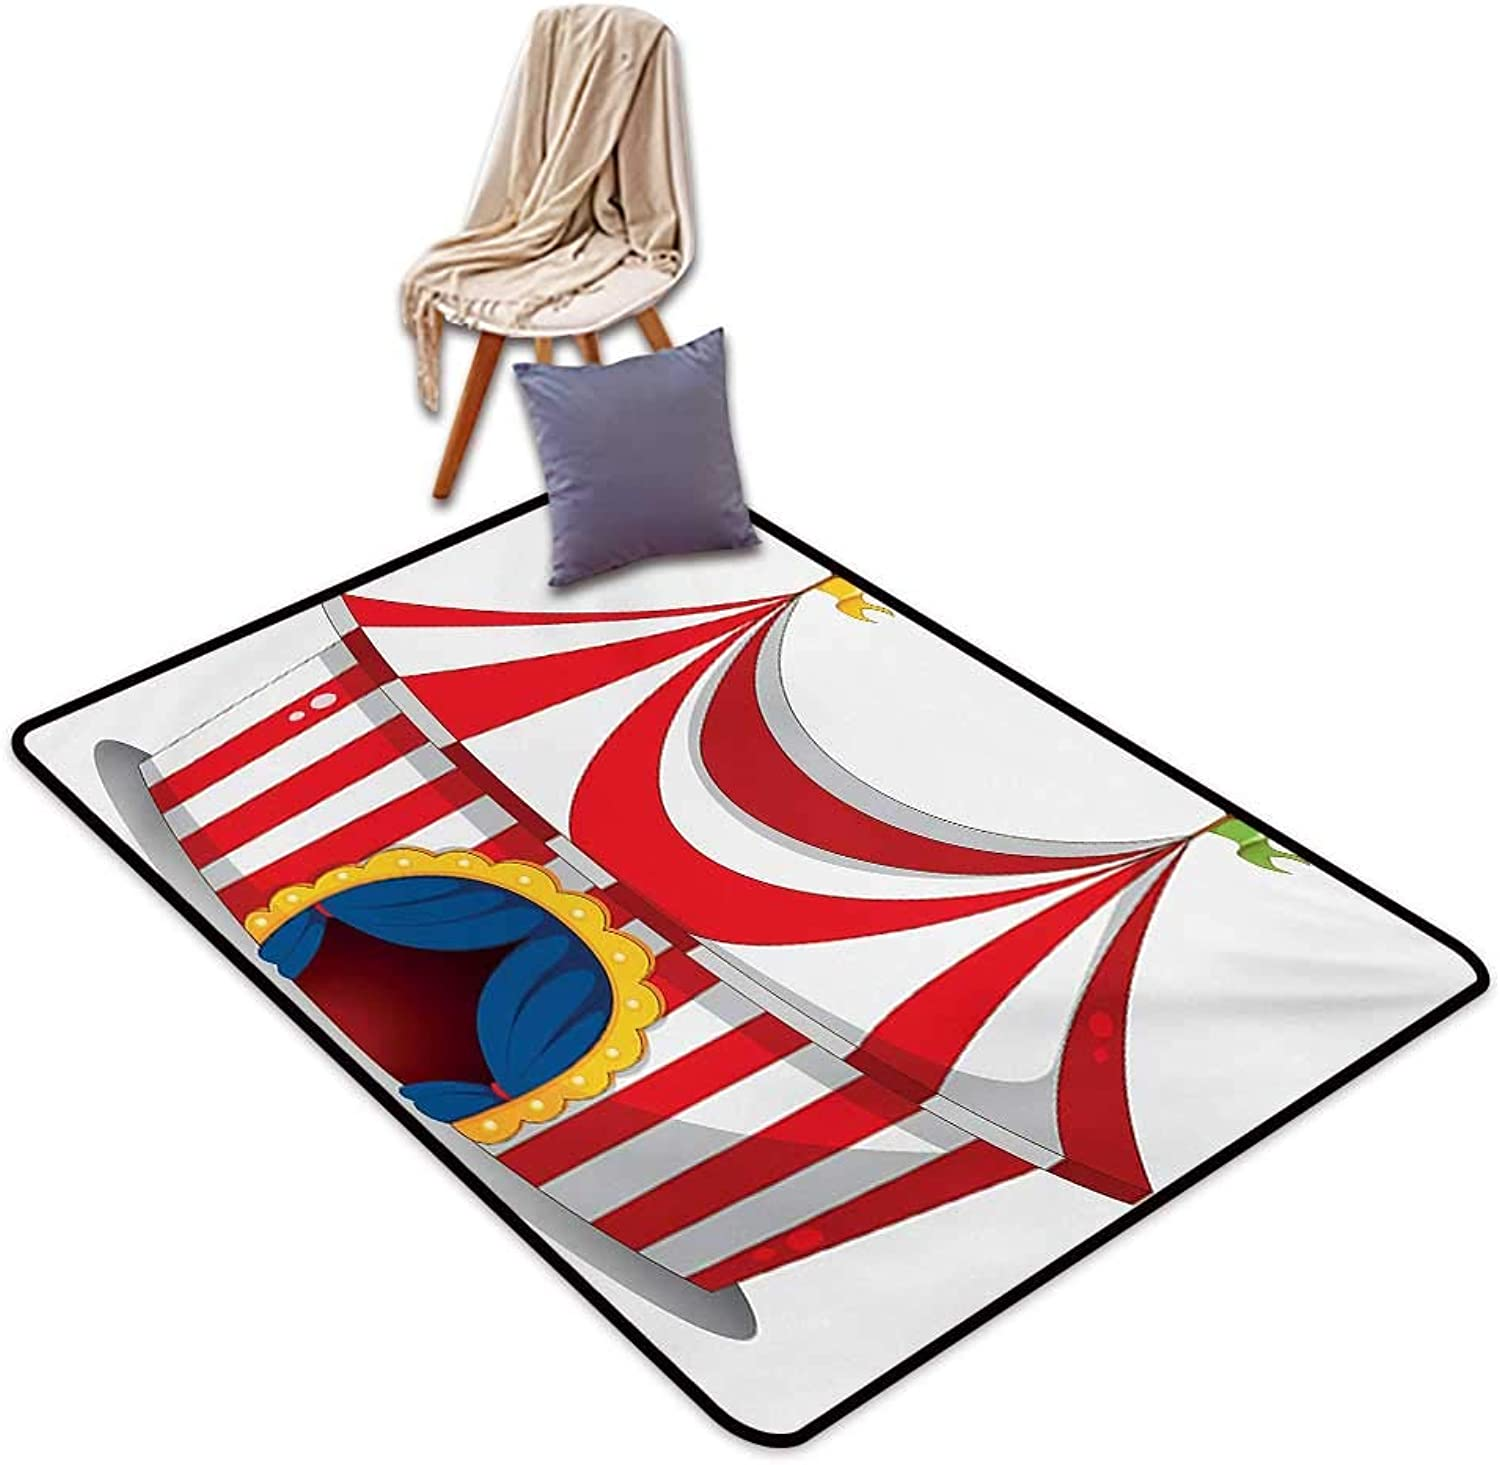 Circus Large Outdoor Indoor Rubber Doormat Illustration of Retro Circus with Flag Nostalgic Fun Festival Carnival Venue Artistic Water Absorption, Anti-Skid and Oil Proof 48  Wx59 L Red White